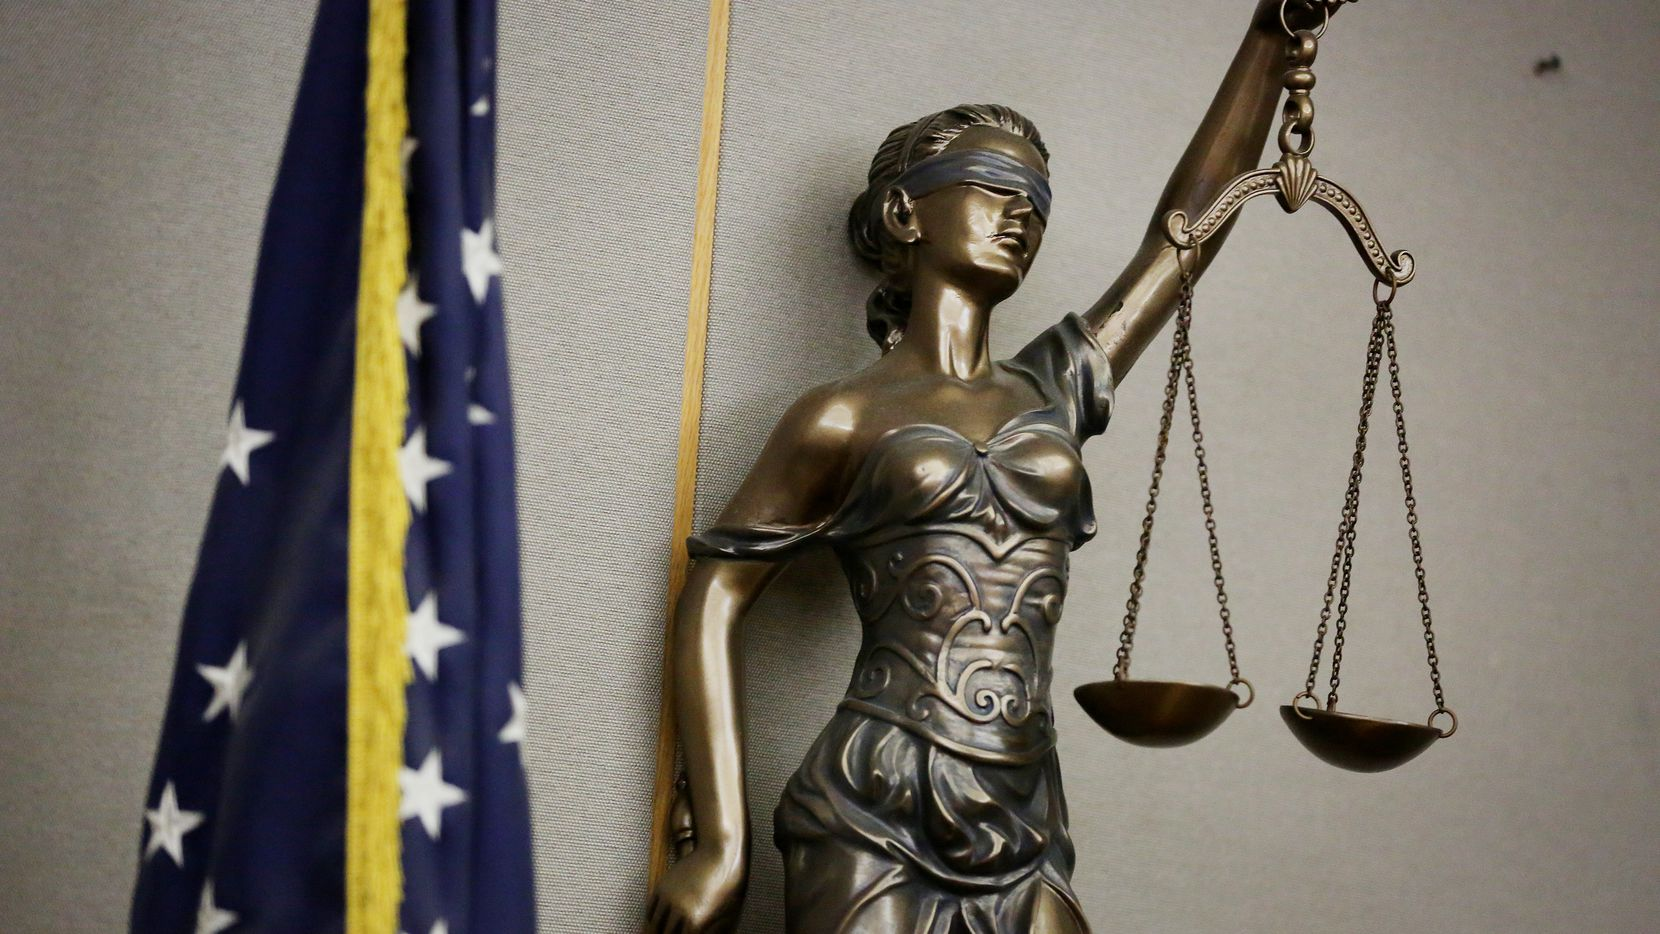 File image of a statue of Lady Justice in a courtroom in the Frank Crowley Courts Building in Dallas.